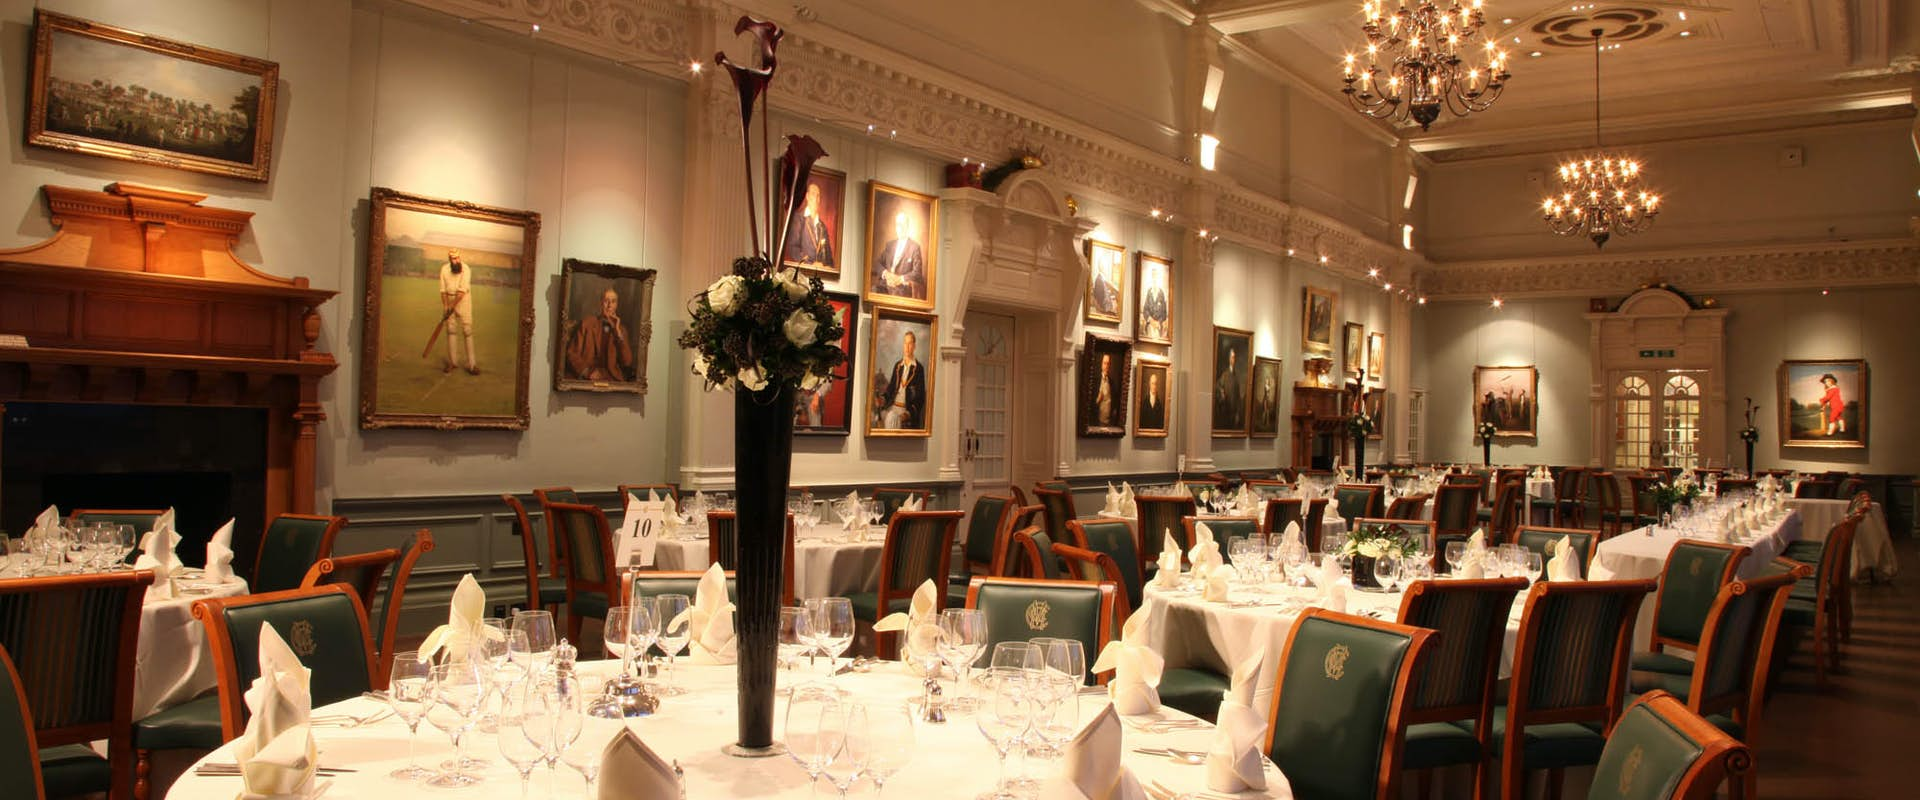 The Long Room at Lord's Cricket Ground